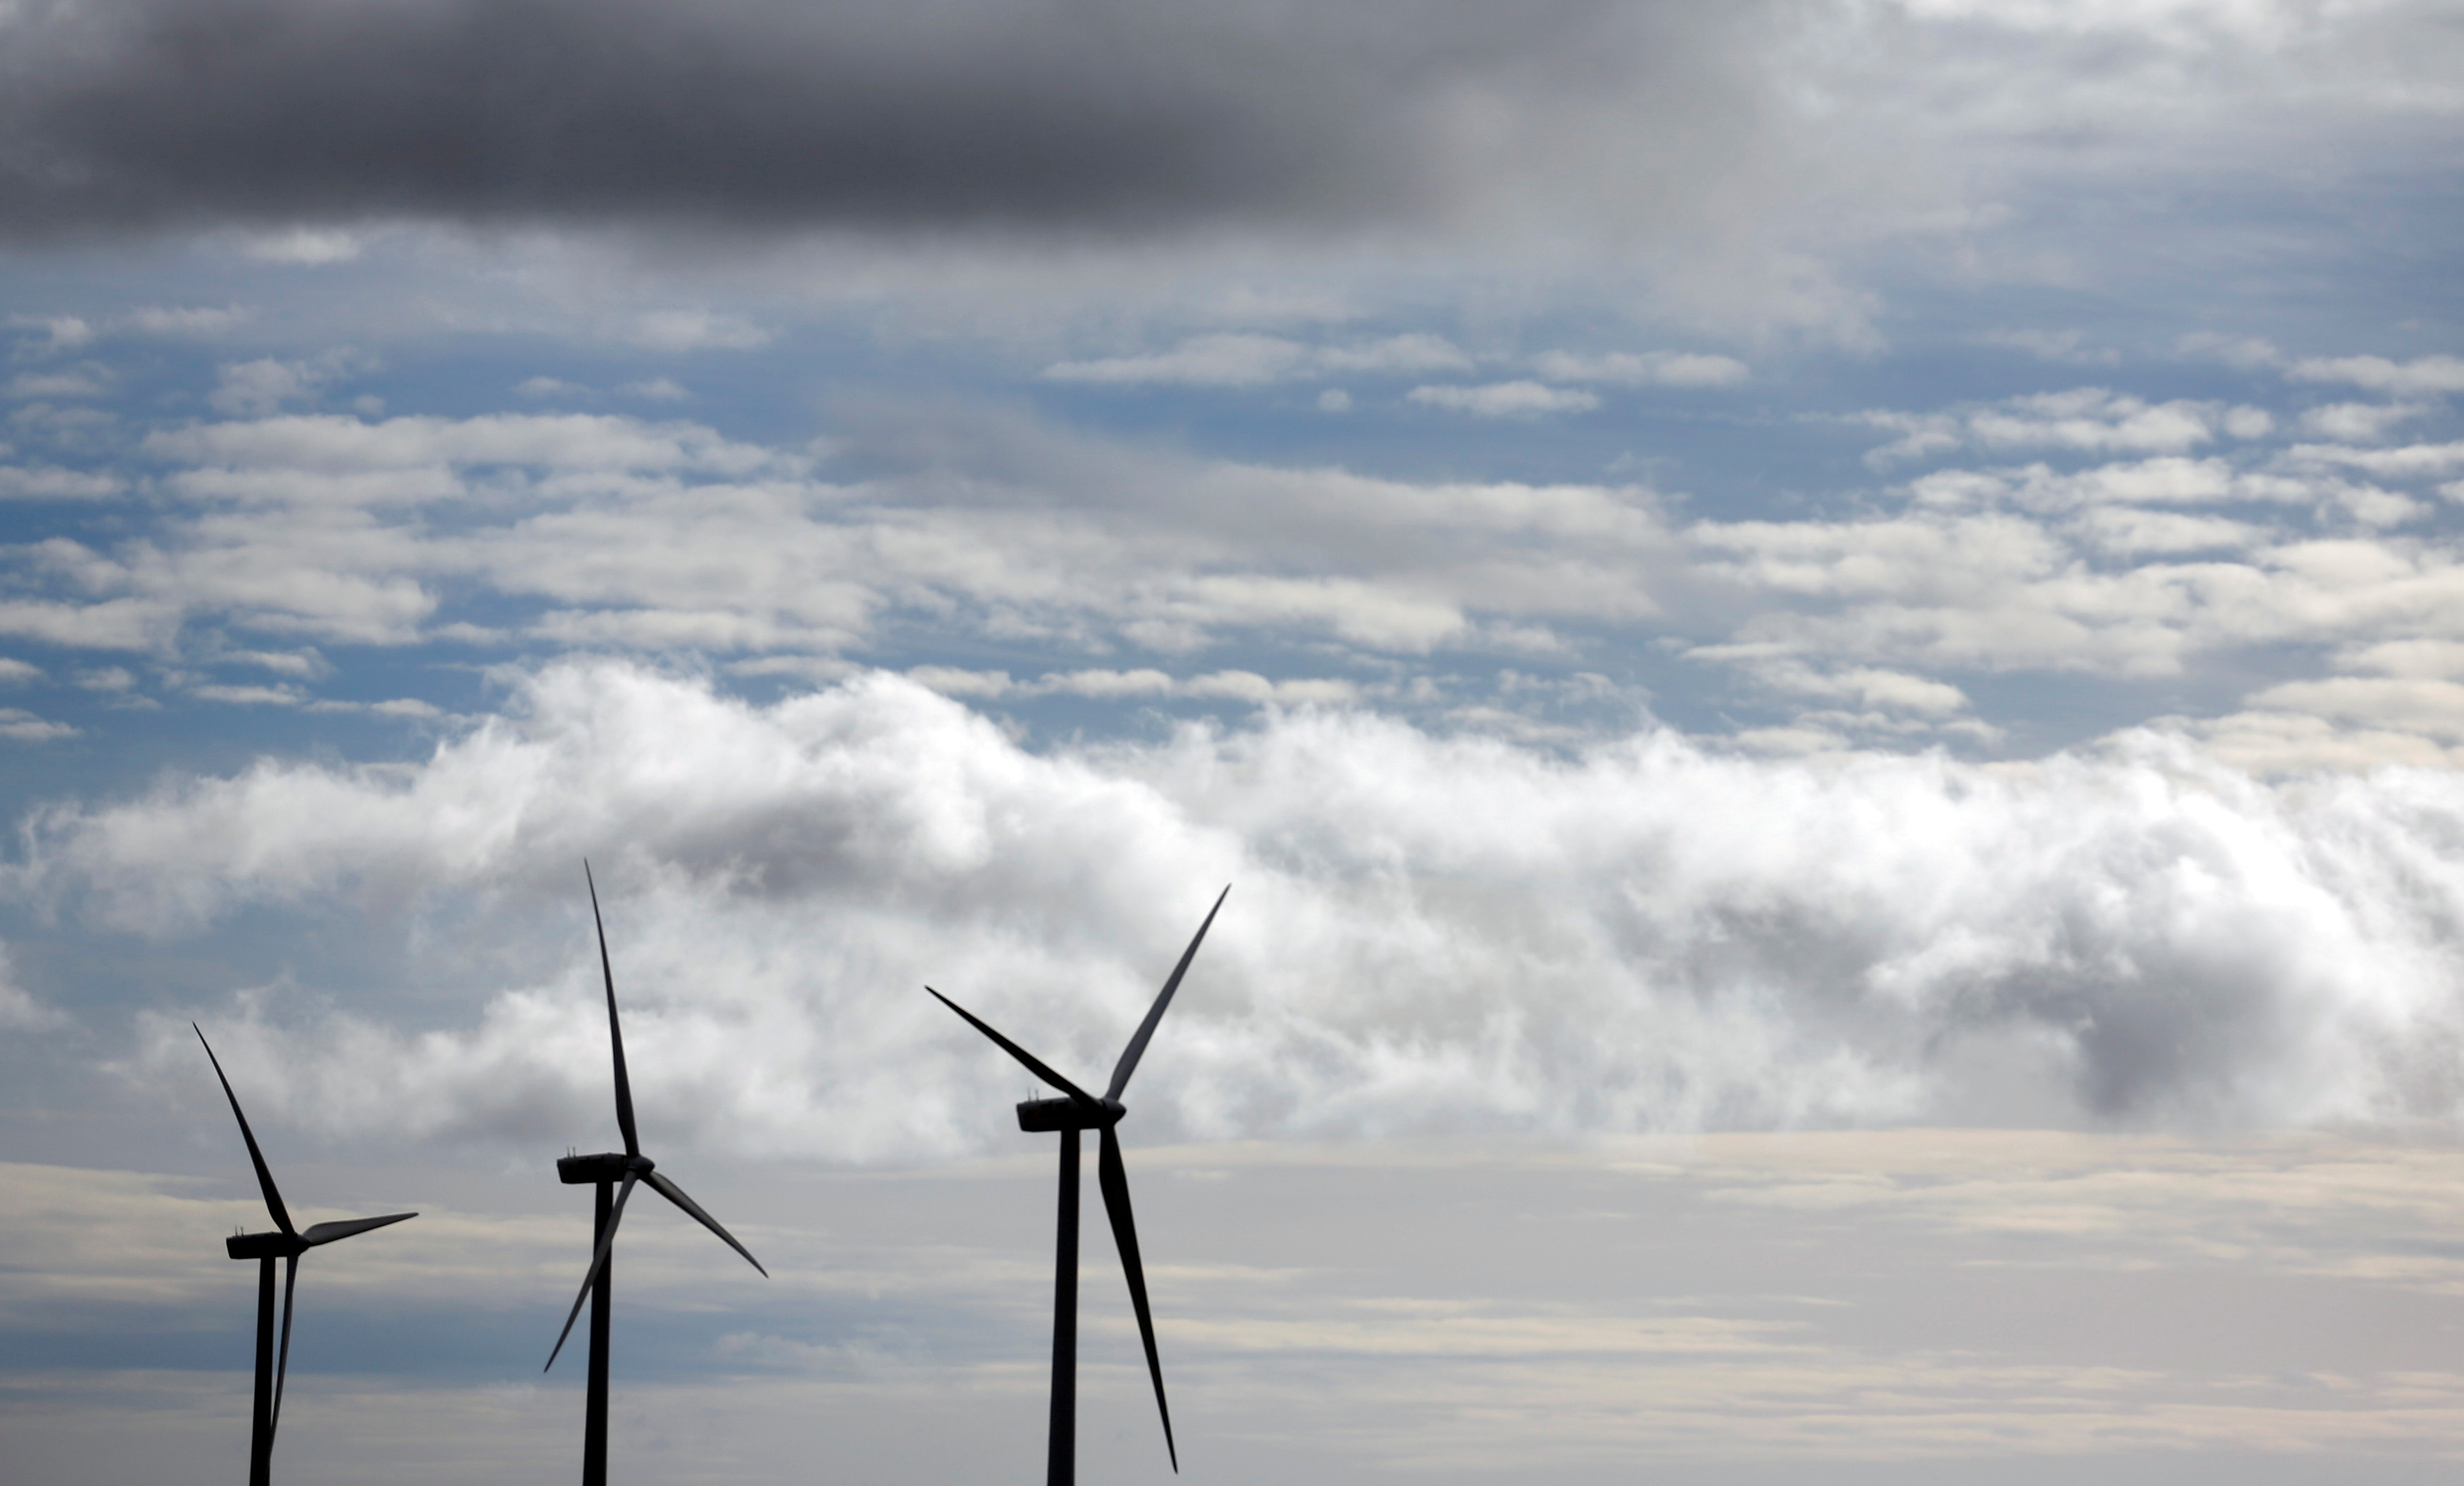 Iberdrola's power generating wind turbines are seen against cloudy sky at Moranchon wind farm in central Spain December 17, 2012.   REUTERS/Sergio Perez